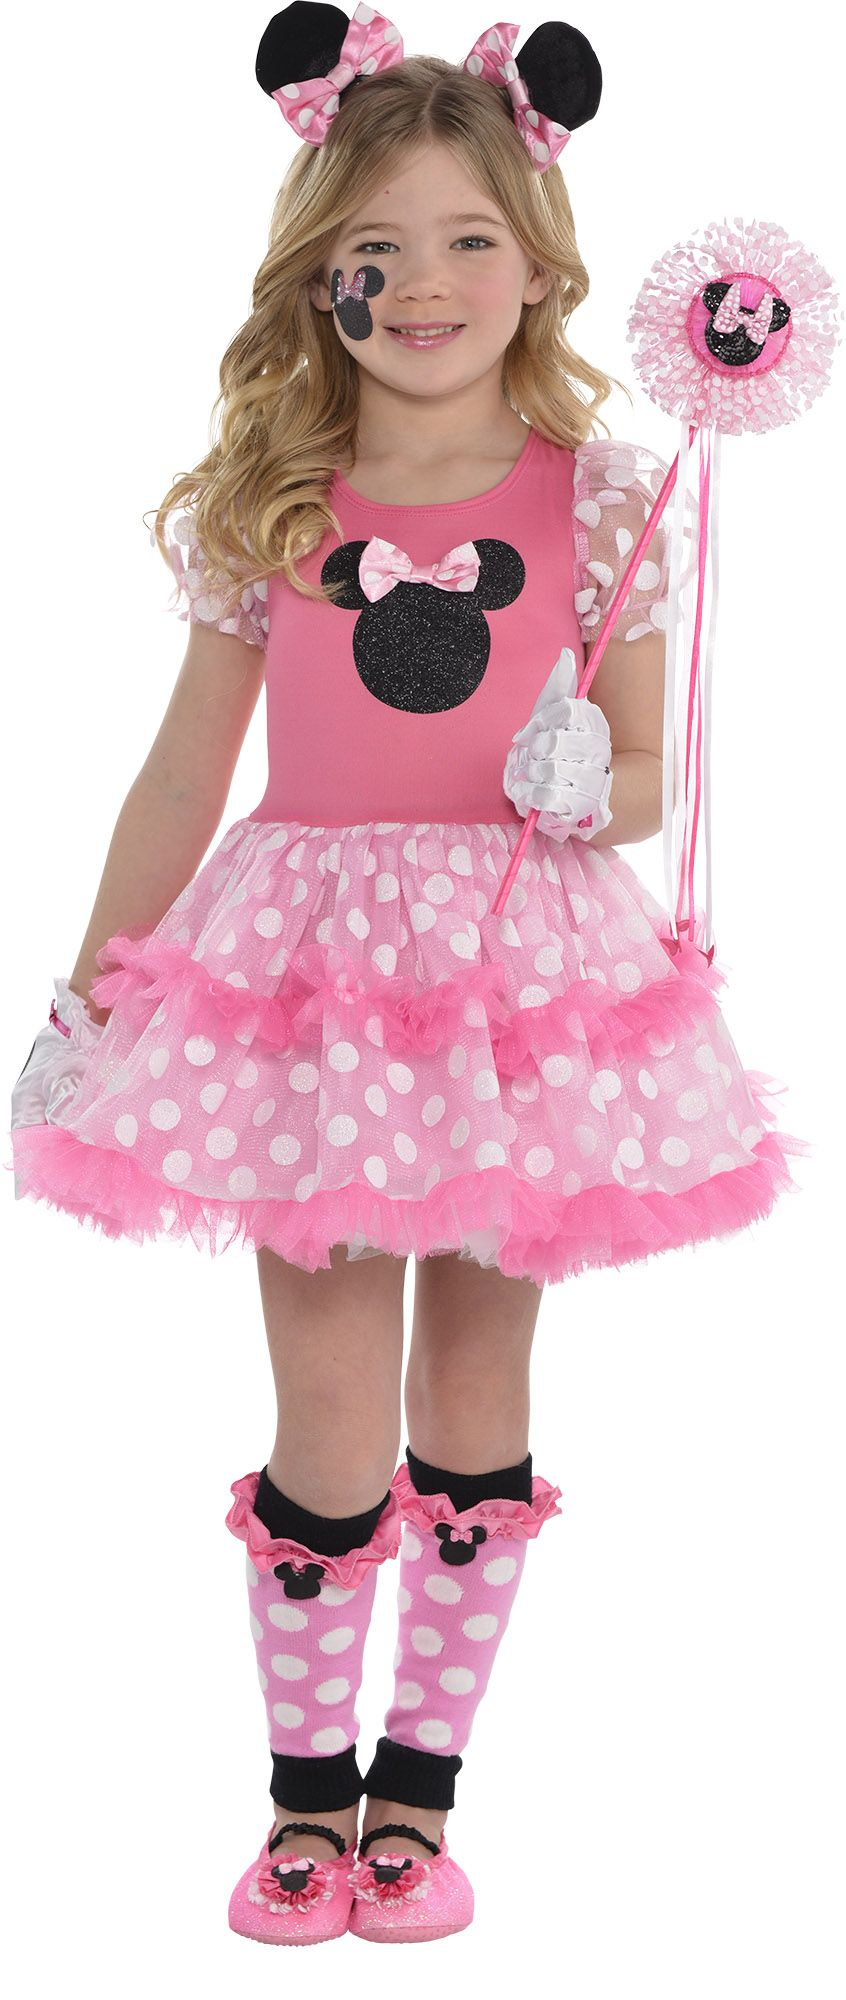 Create Your Own Look - Girl Minnie Mouse Tutu Dress #2